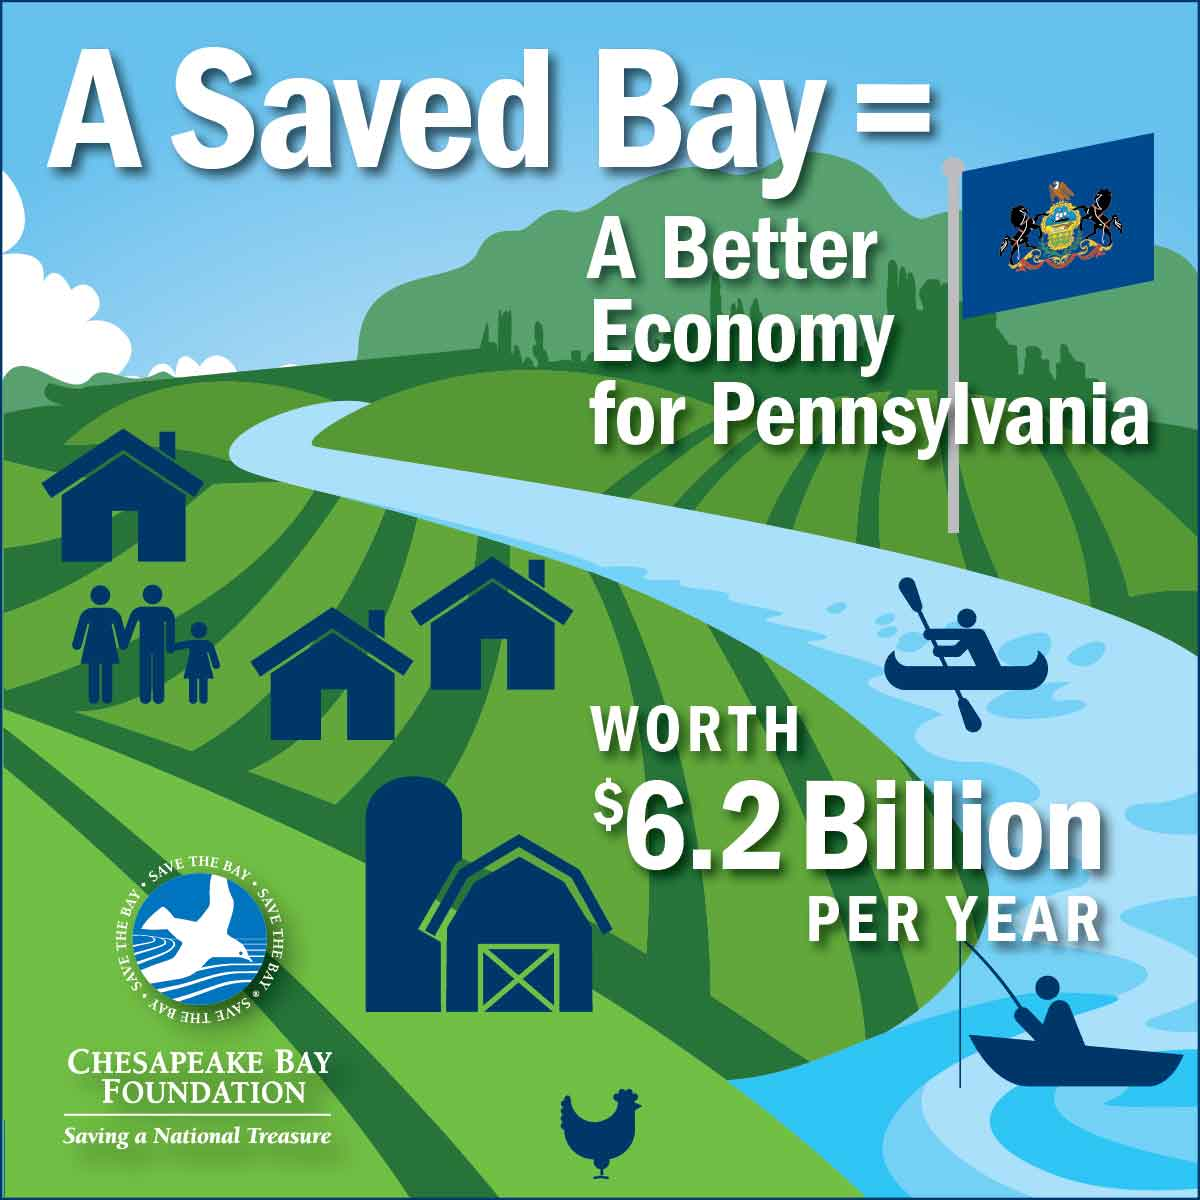 A Saved Bay = A Better Economy for Pennsylvania worth $6.2 Billion per year